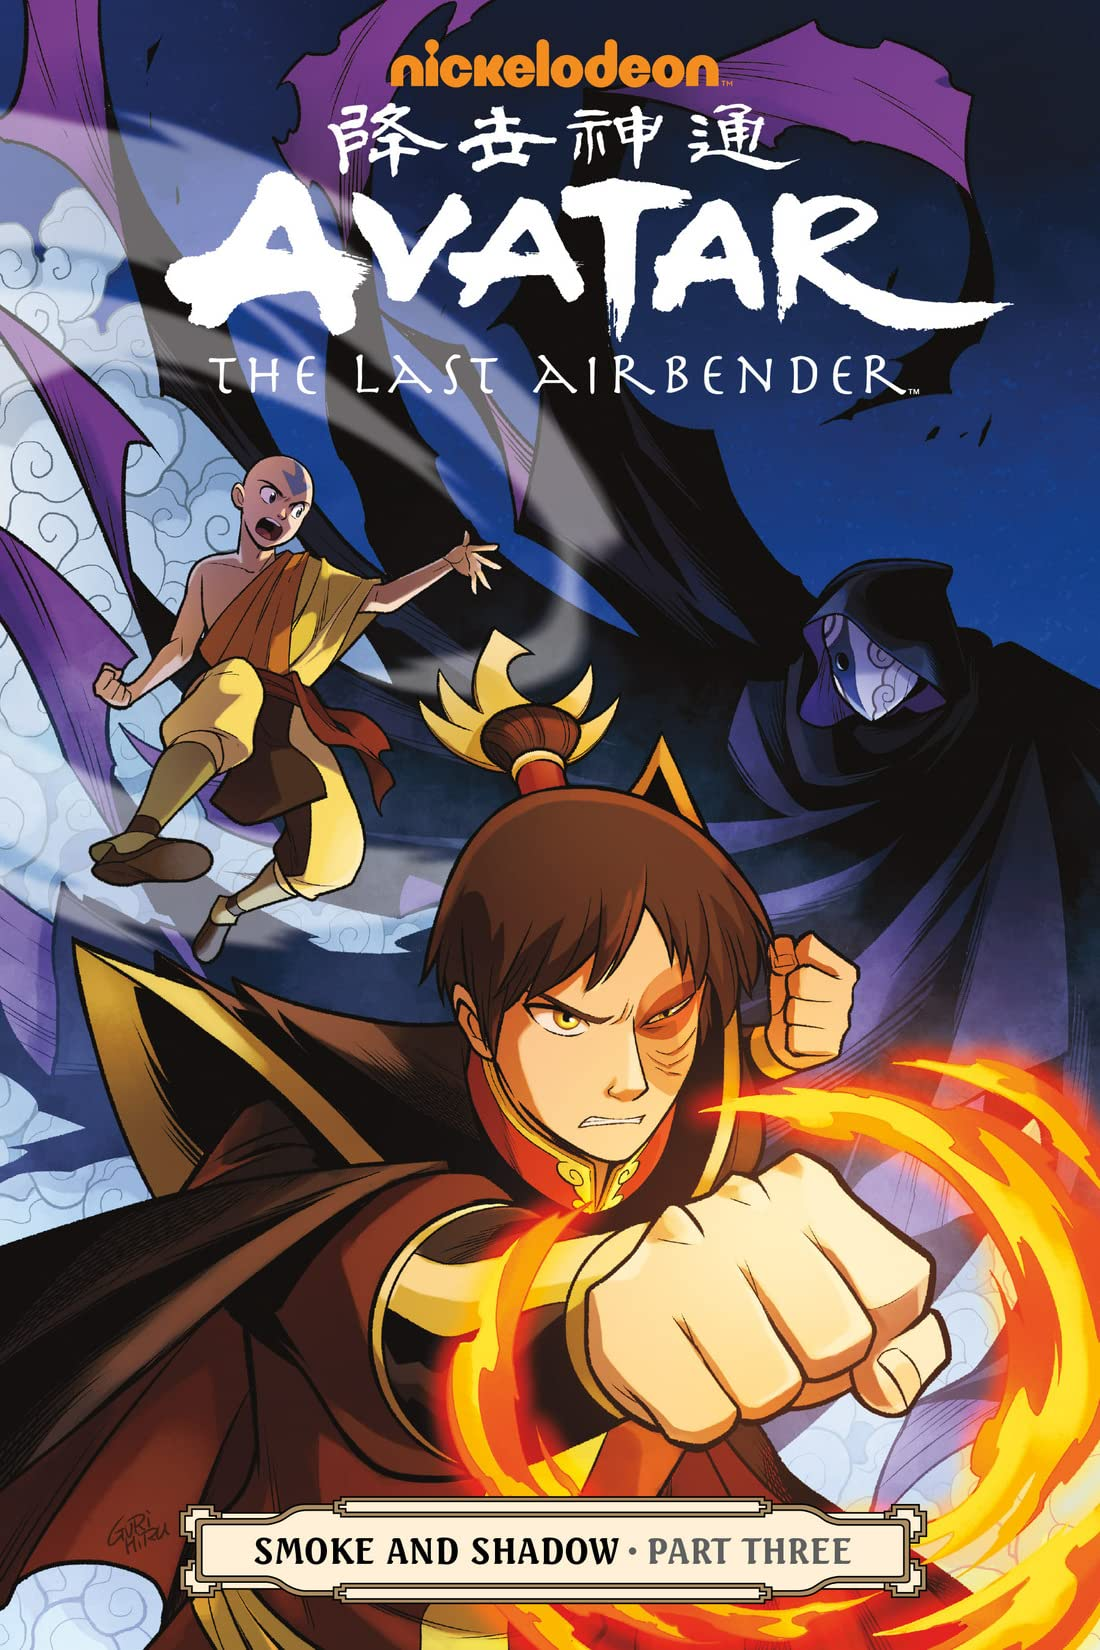 Avatar: The Last Airbender: Smoke & Shadow Part 3